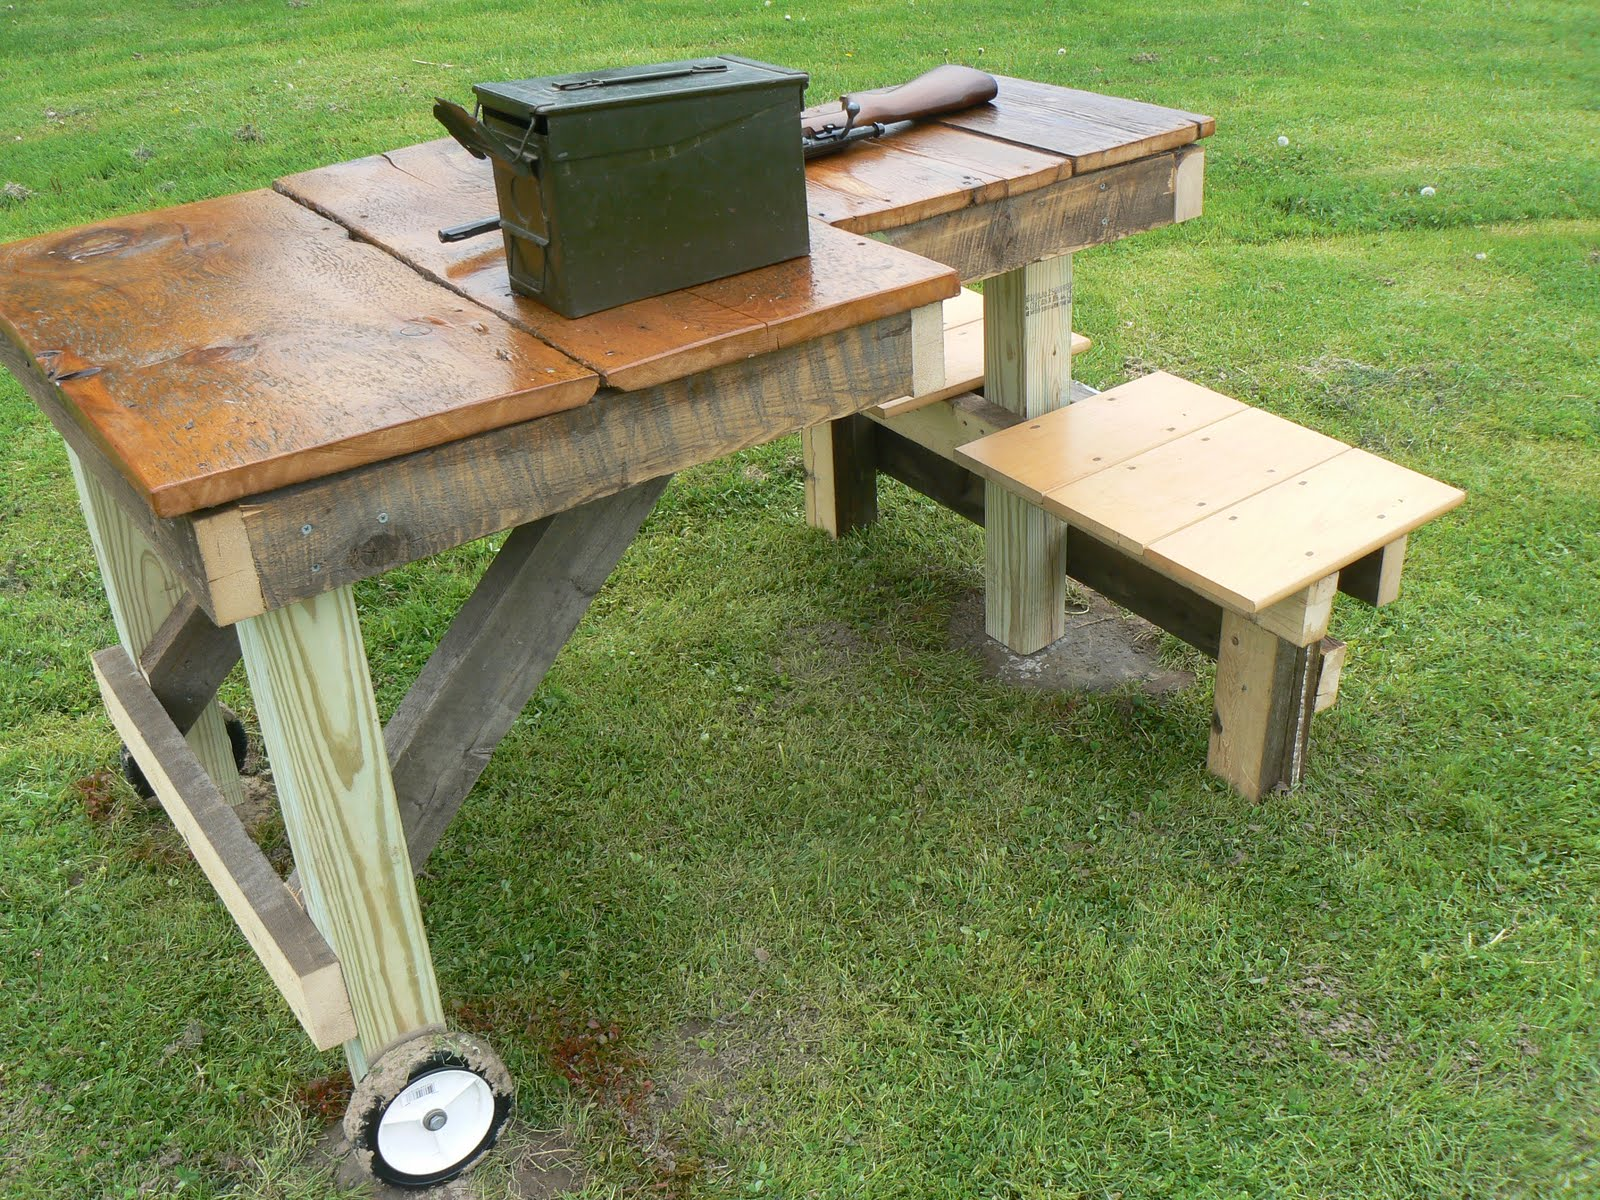 Portable Shooting Bench Building Plans | AndyBrauer.com